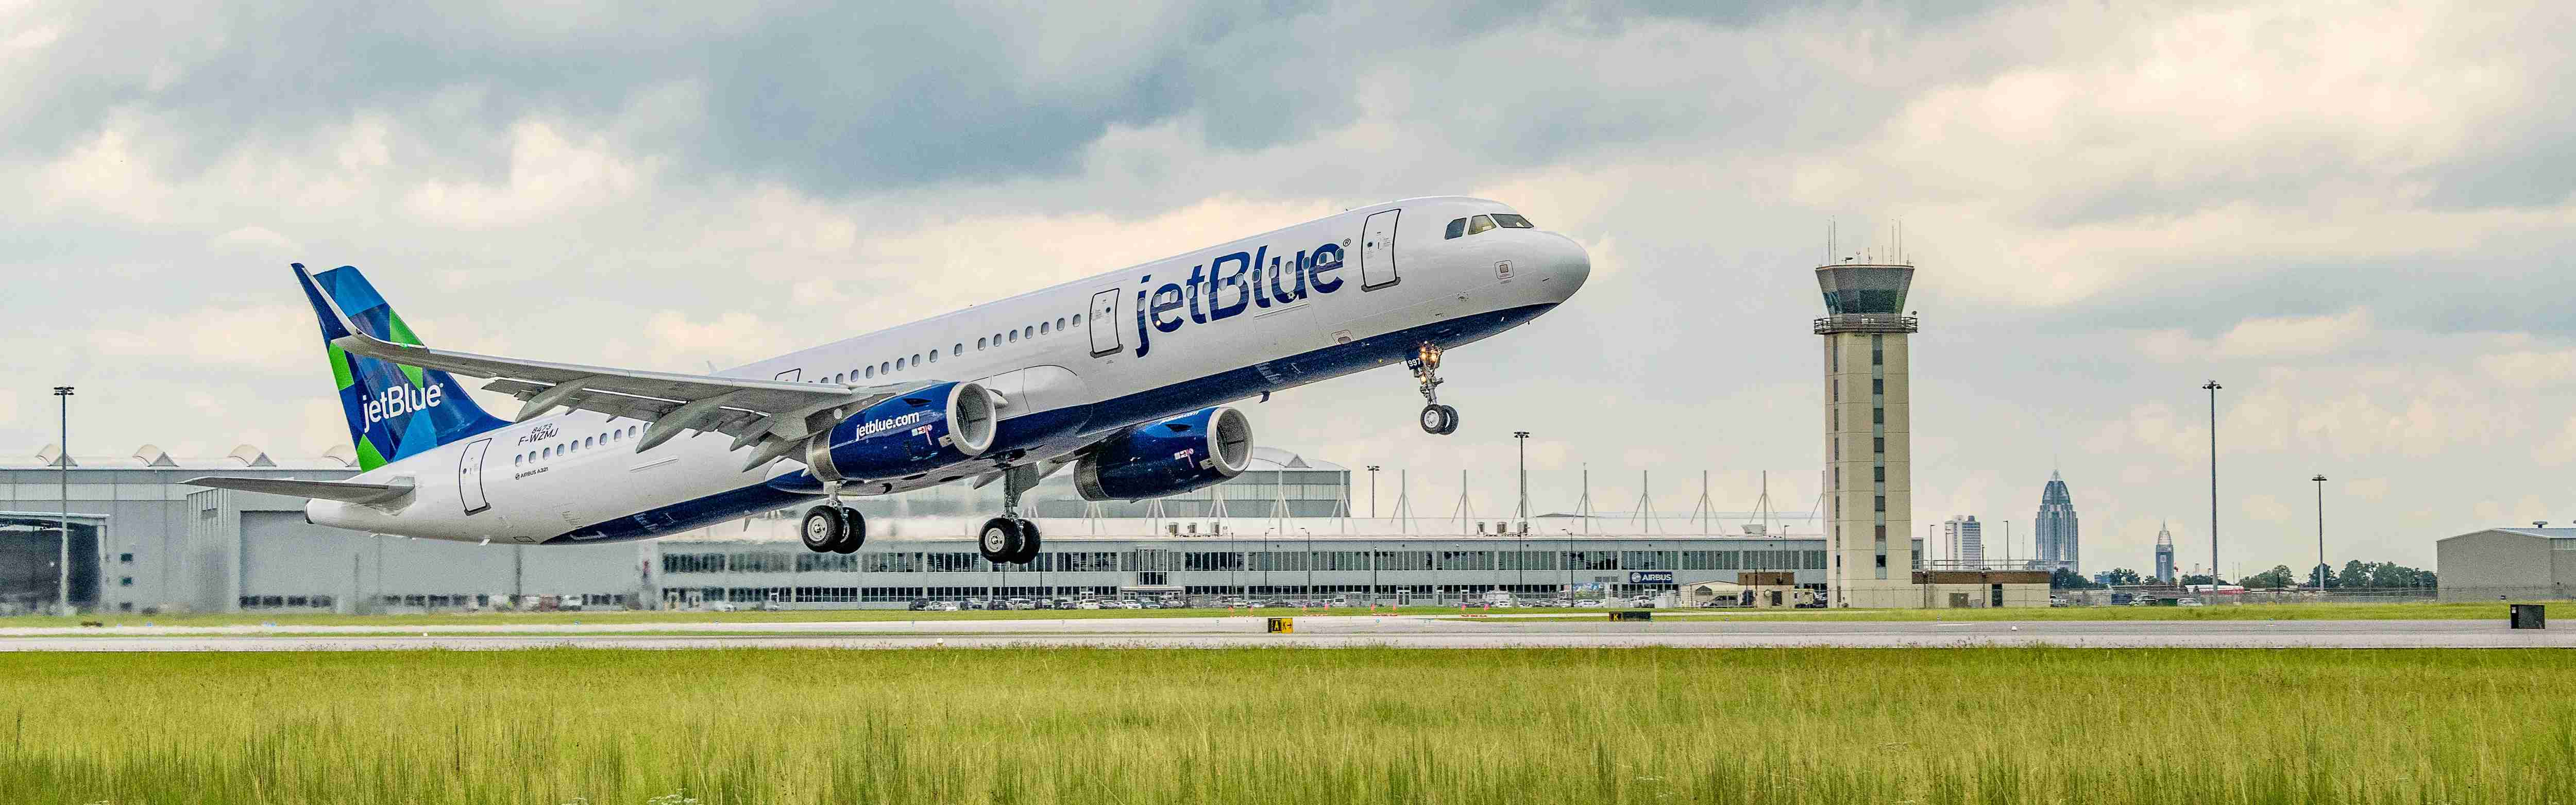 JetBlue renewable fuel a321